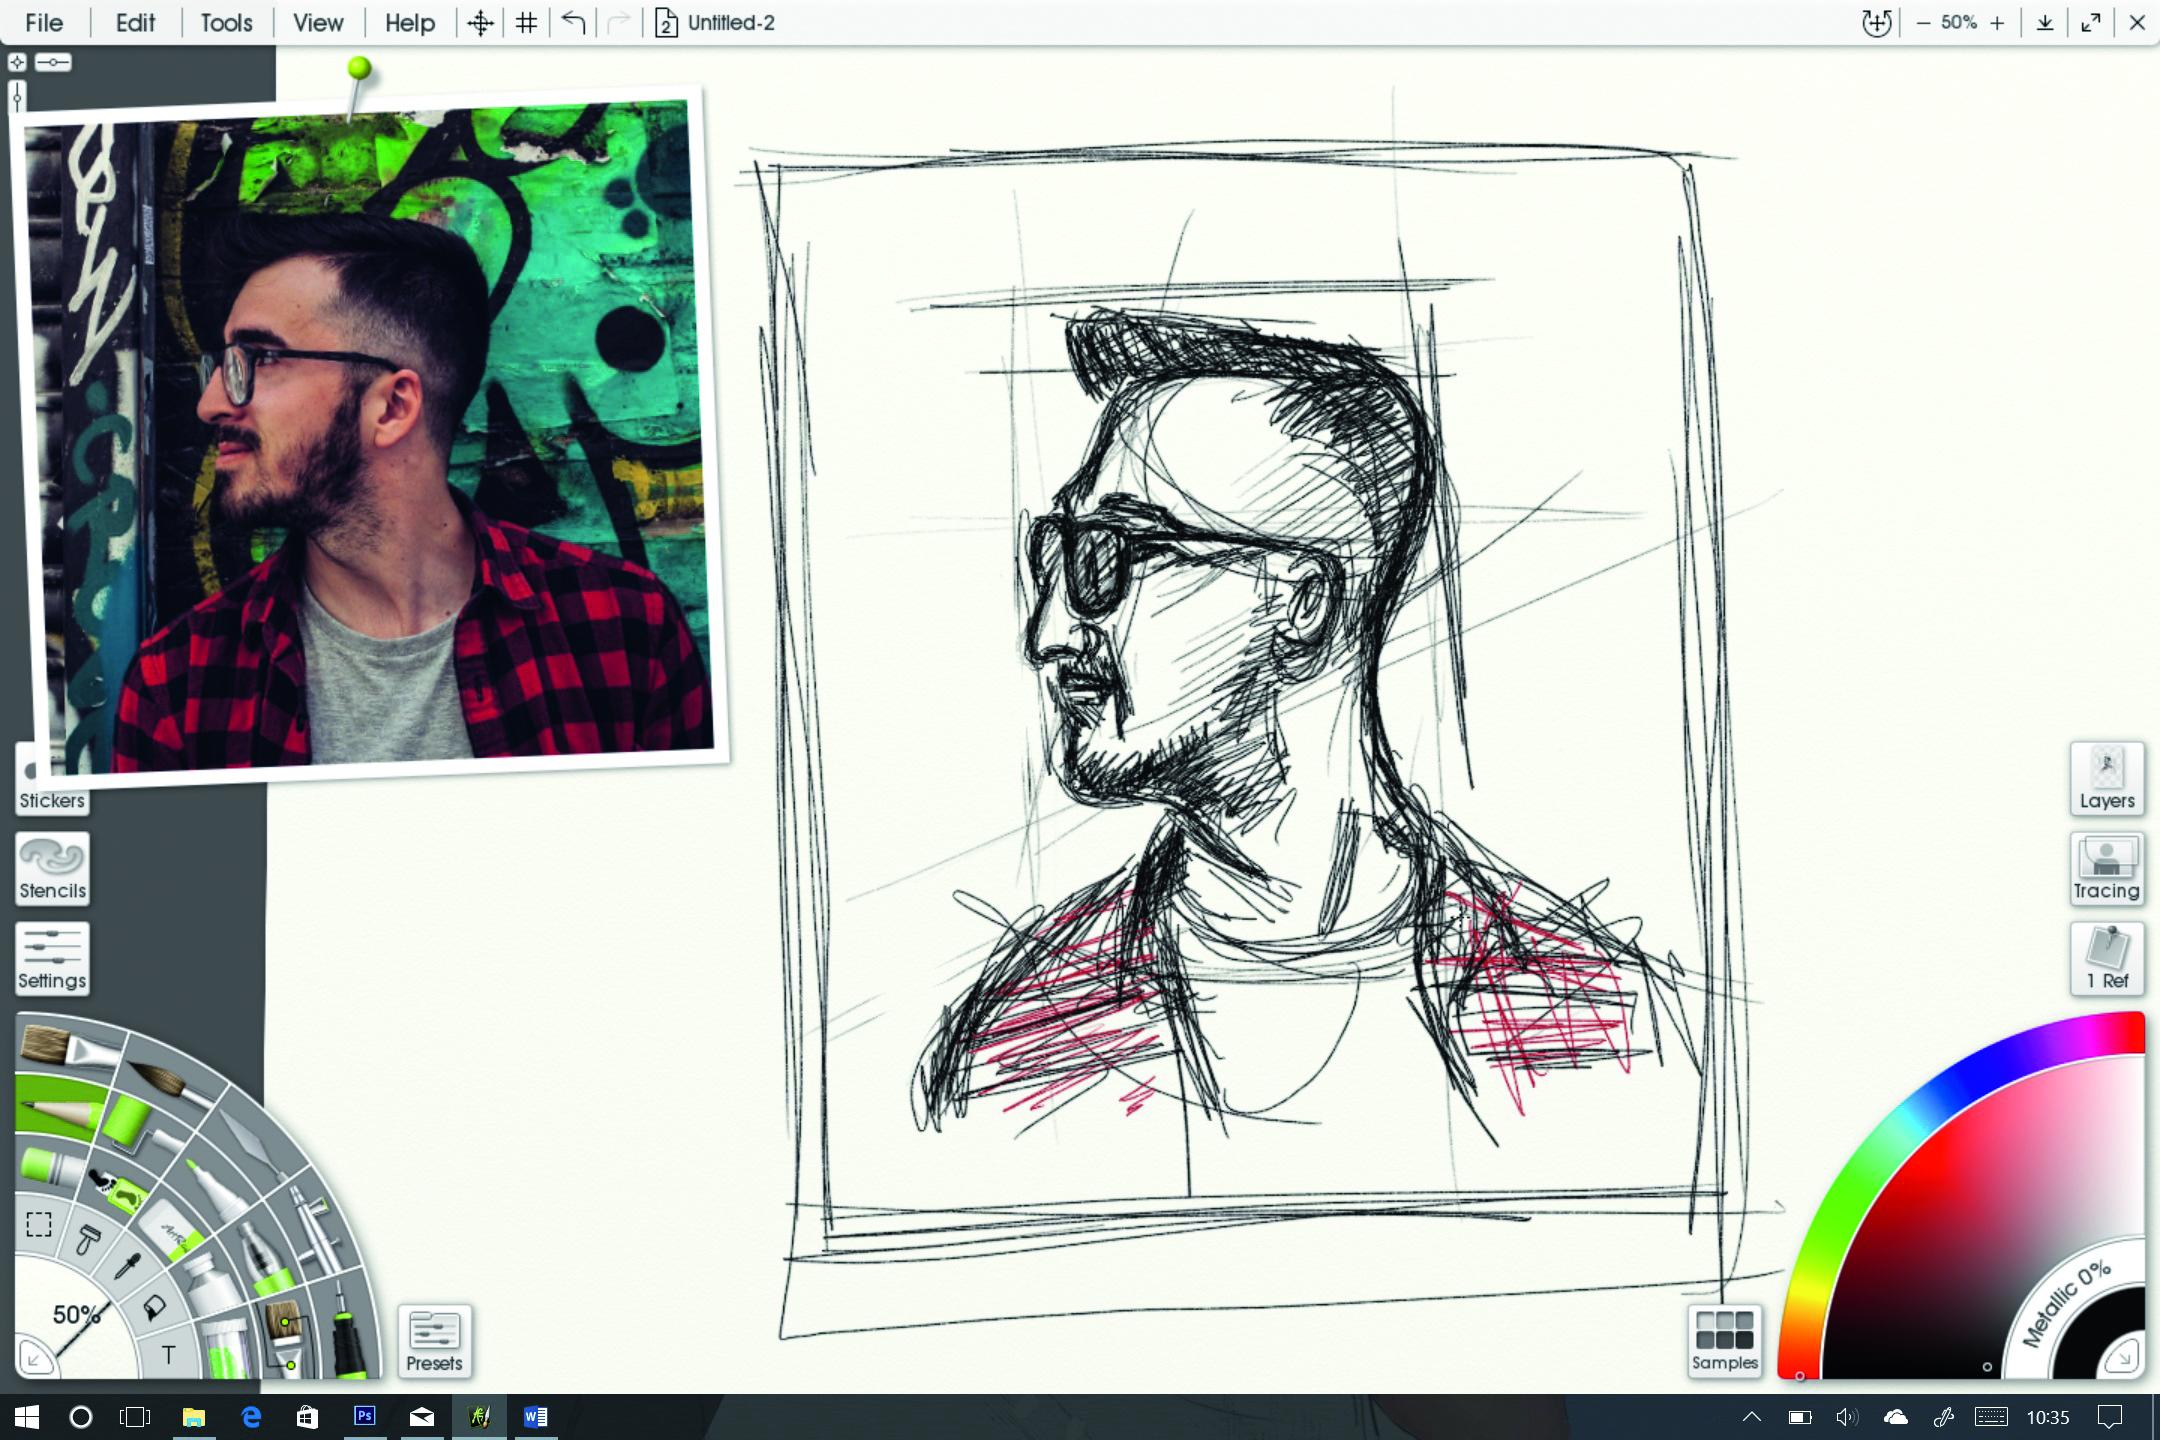 drawing of man with photo next to it